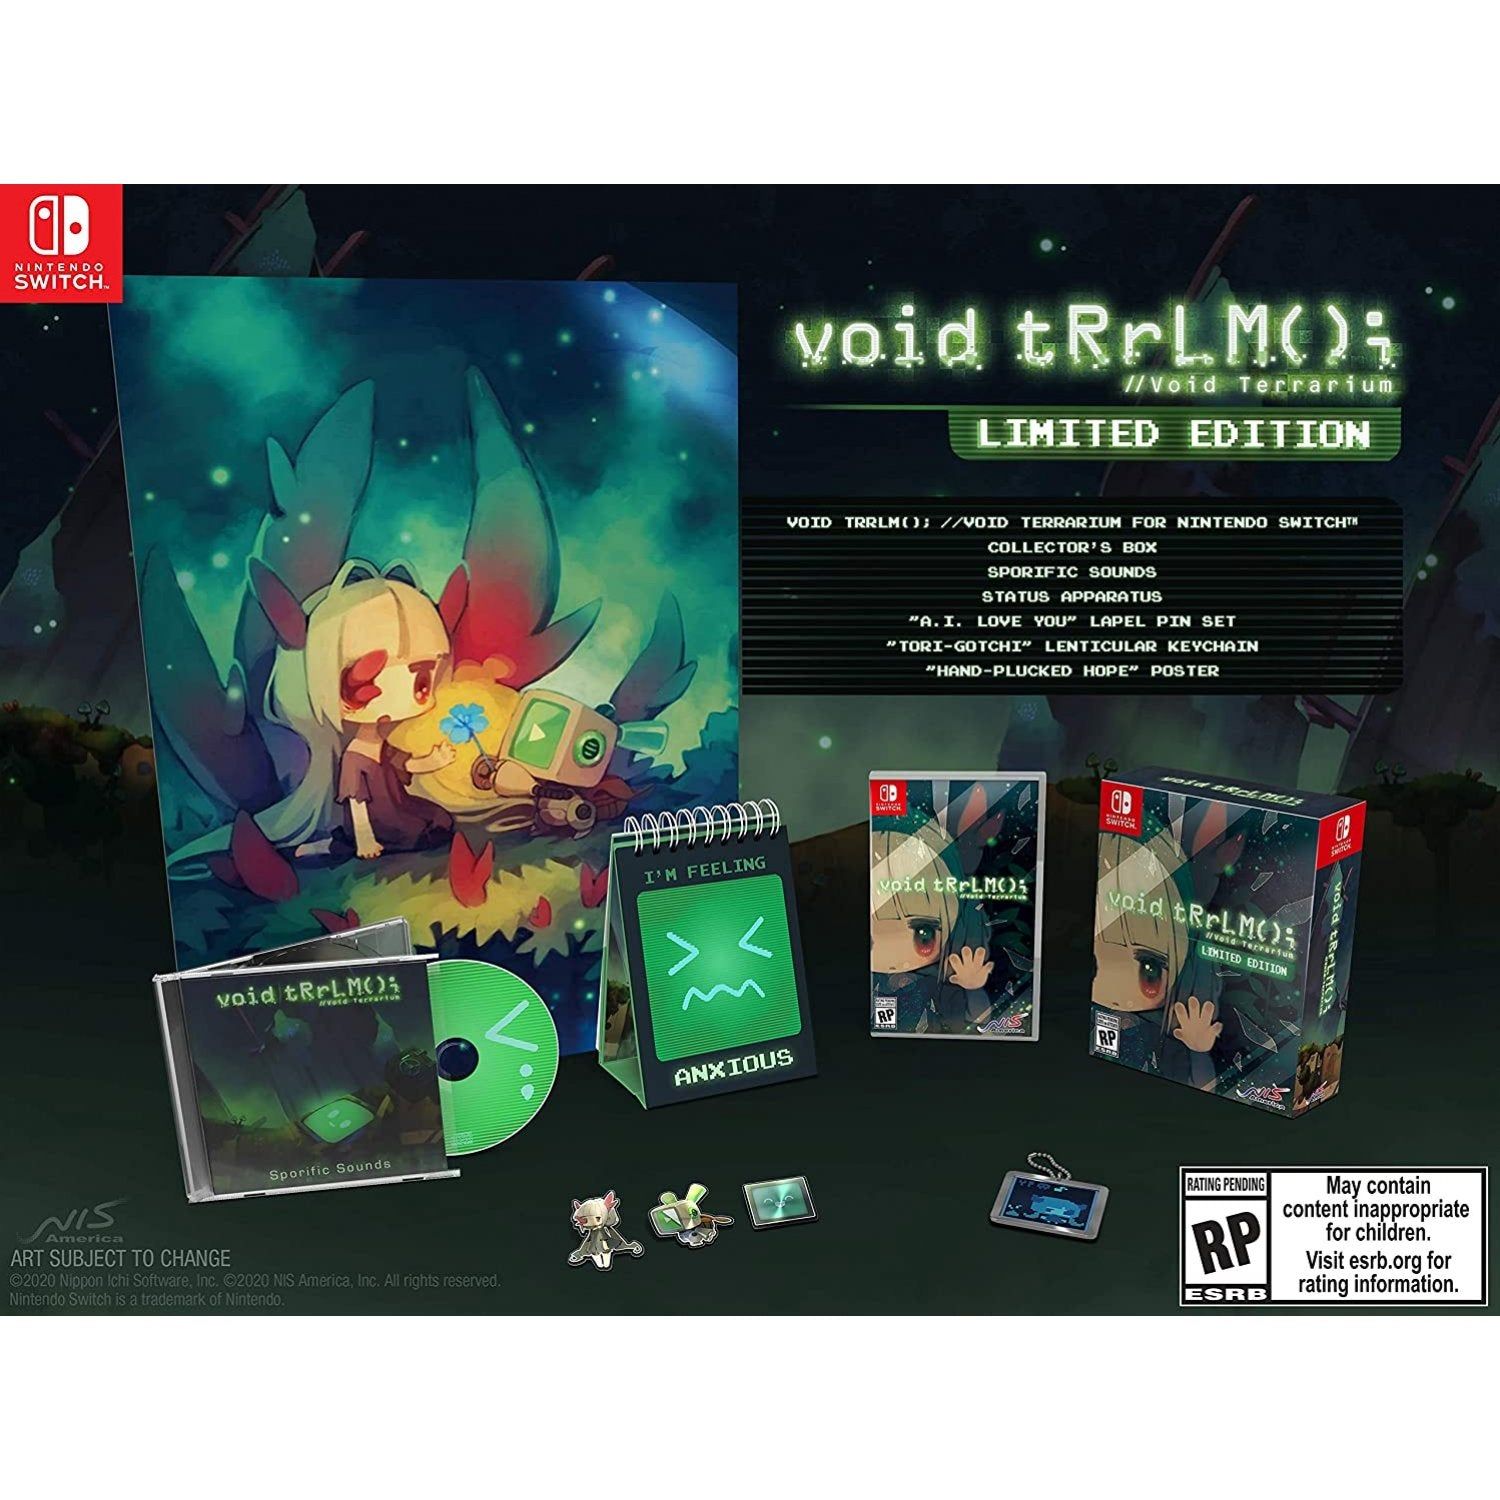 Nintendo Switch void tRrLM(); //Void Terrarium [Limited Edition]